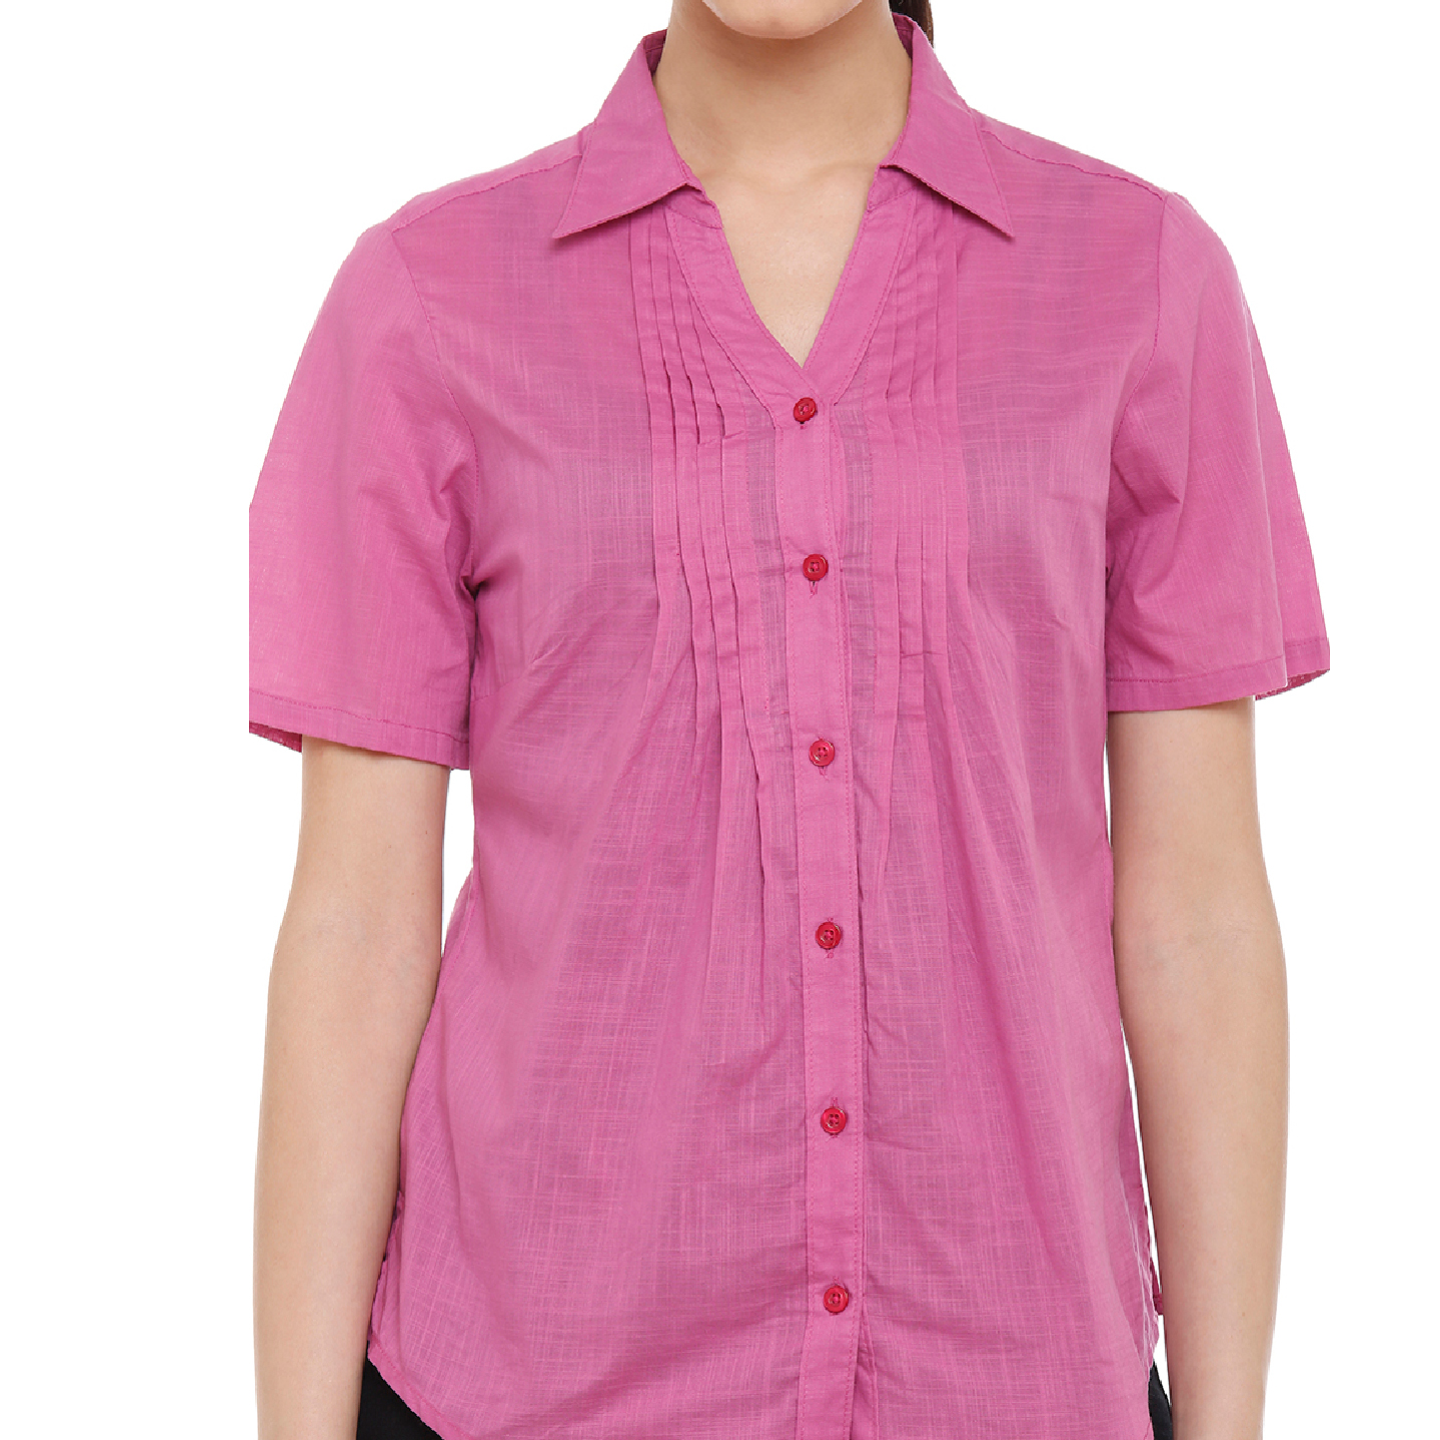 Double TWO Womens Cotton Half Sleeve Pink Shirt